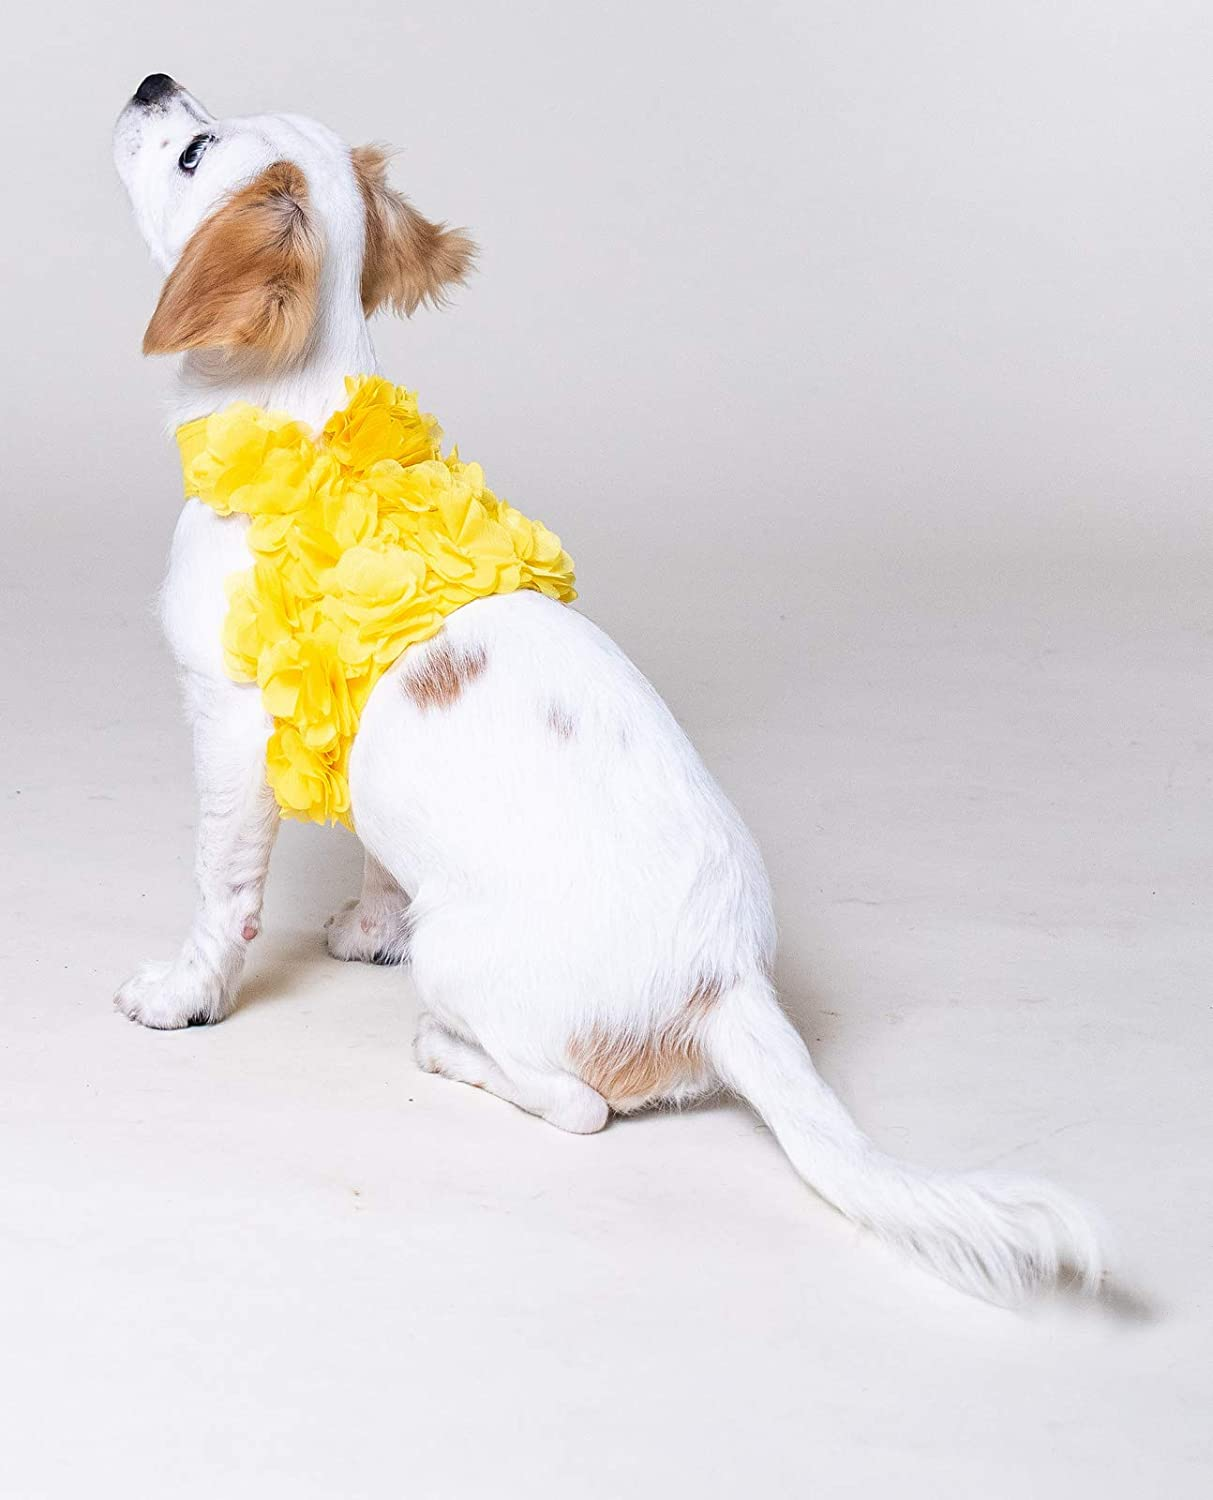 Floral Pink XS, Yellow Purple or Yellow Dog Harness and Leash Set for XSmall and  Small Breeds Very Stylish and Cute